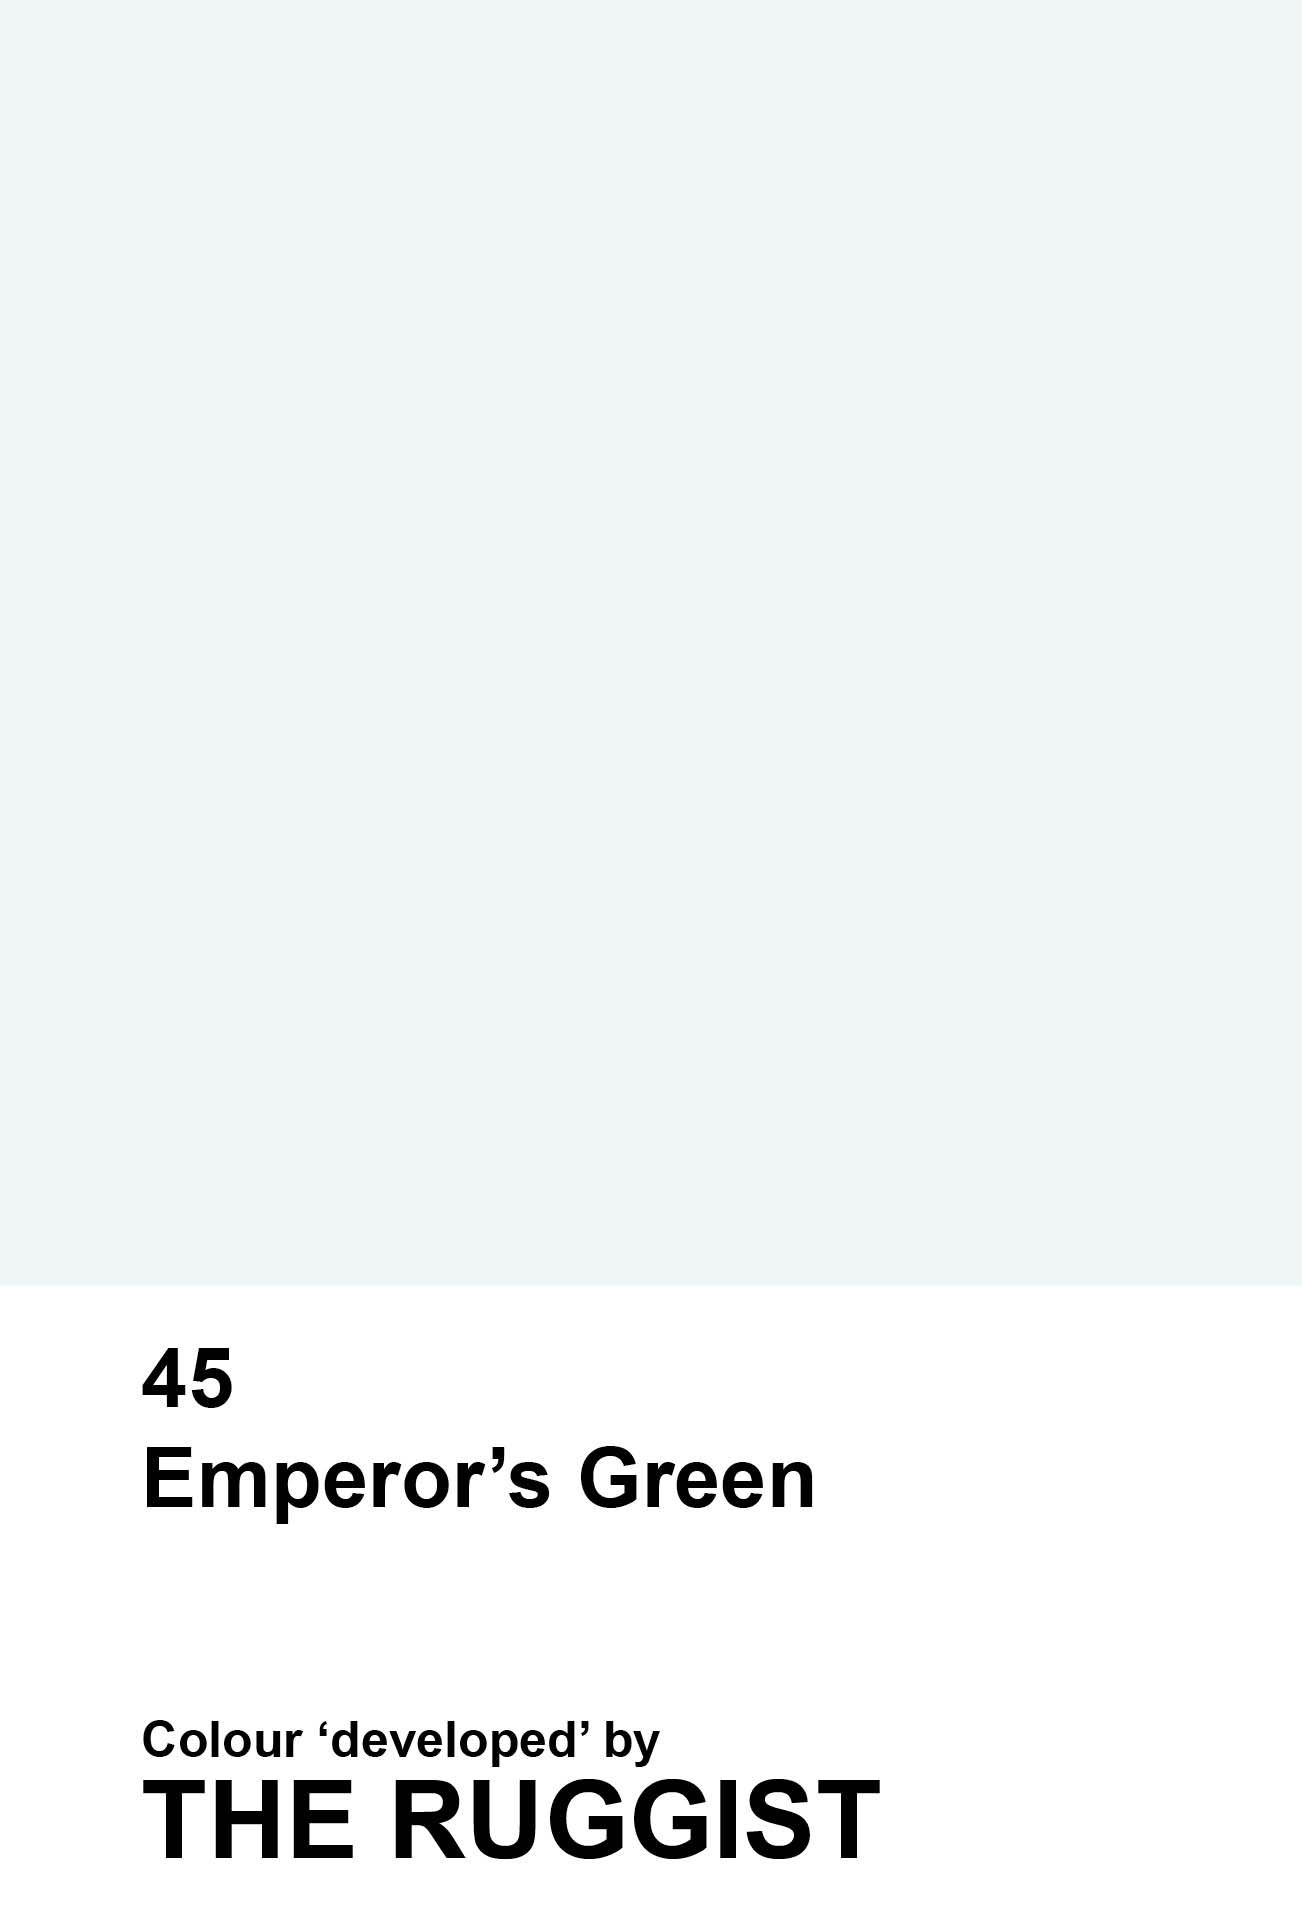 'Emperor's Green' colour reference as 'developed' by The Ruggist. | Image by The Ruggist.